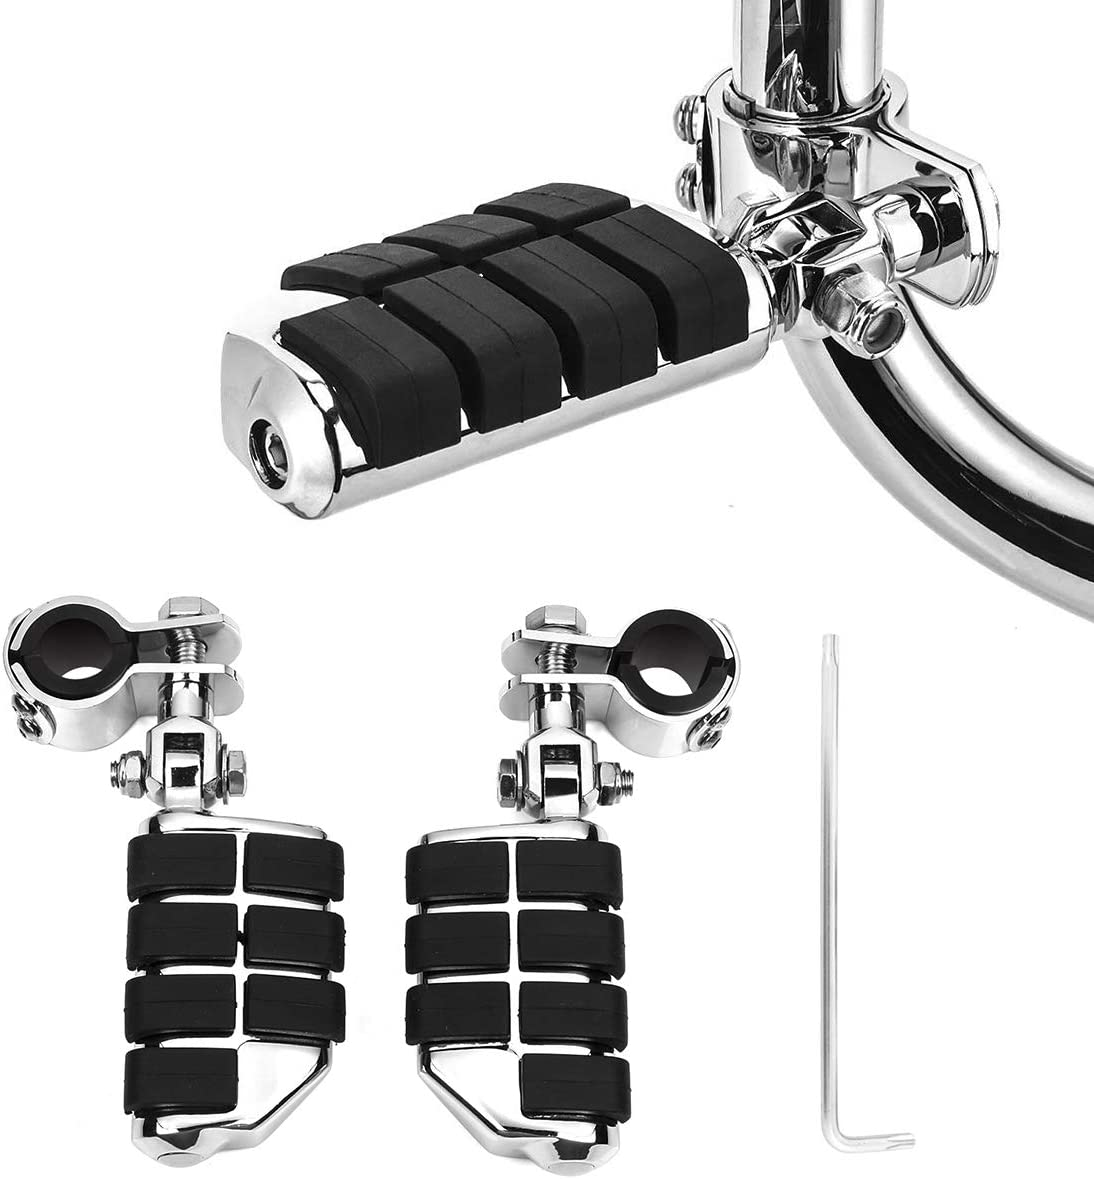 Motorcycle Footpegs Highway Pegs Foot Rest (Black) for Road King Street Glide Honda Suzuki Yamaha Kawasaki Engine Guard